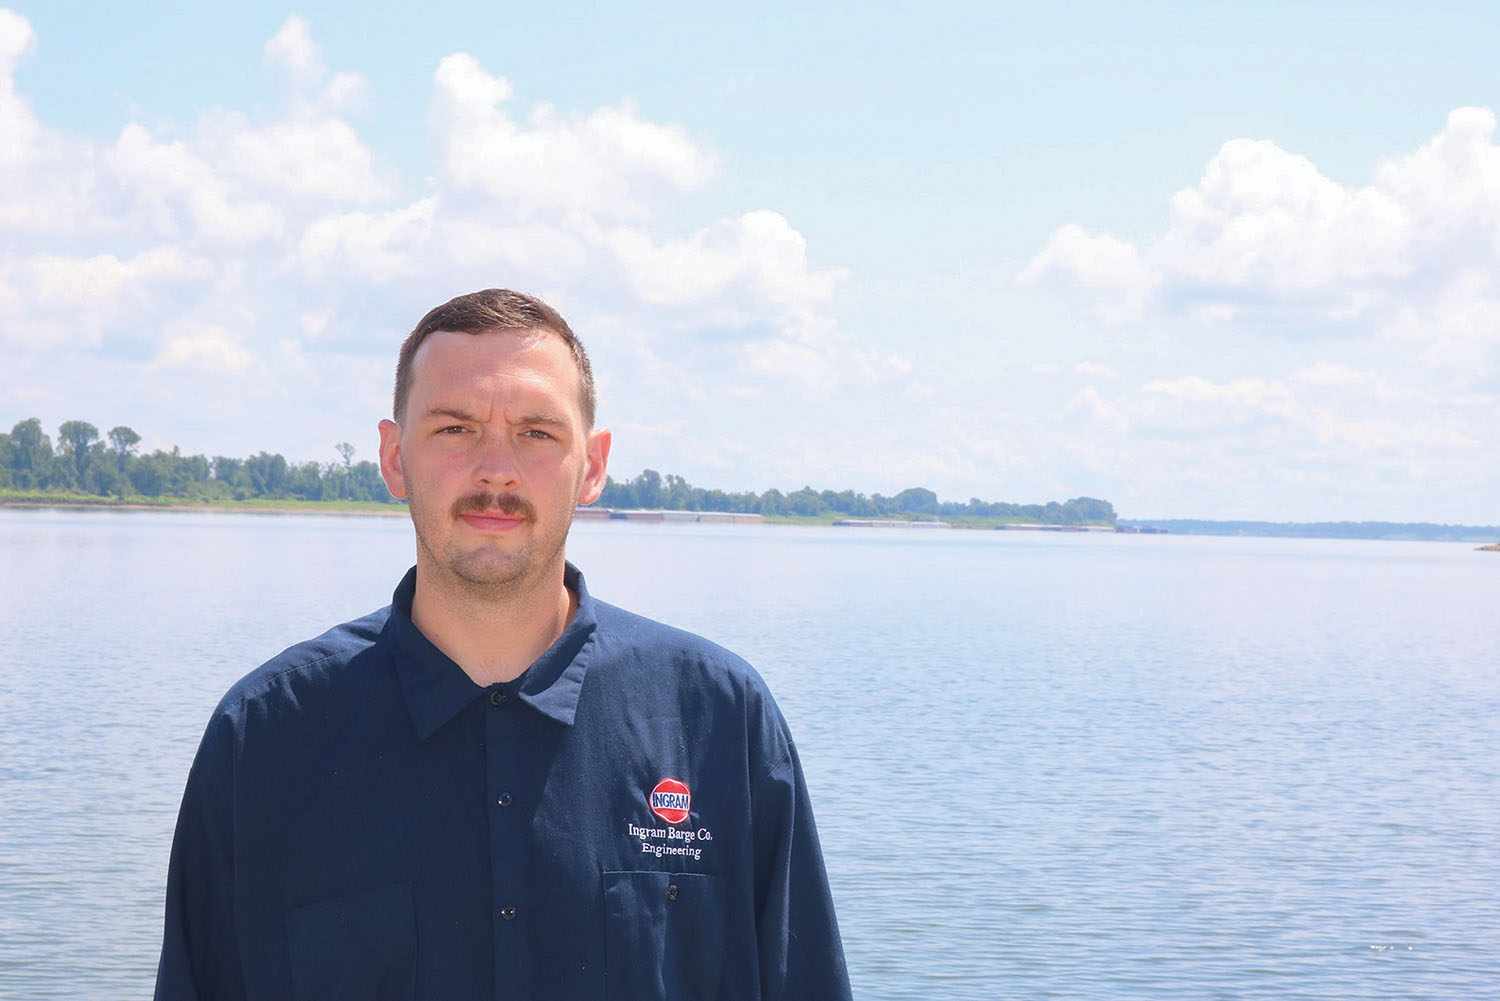 Zach Burkhart, Ingram Barge Company.